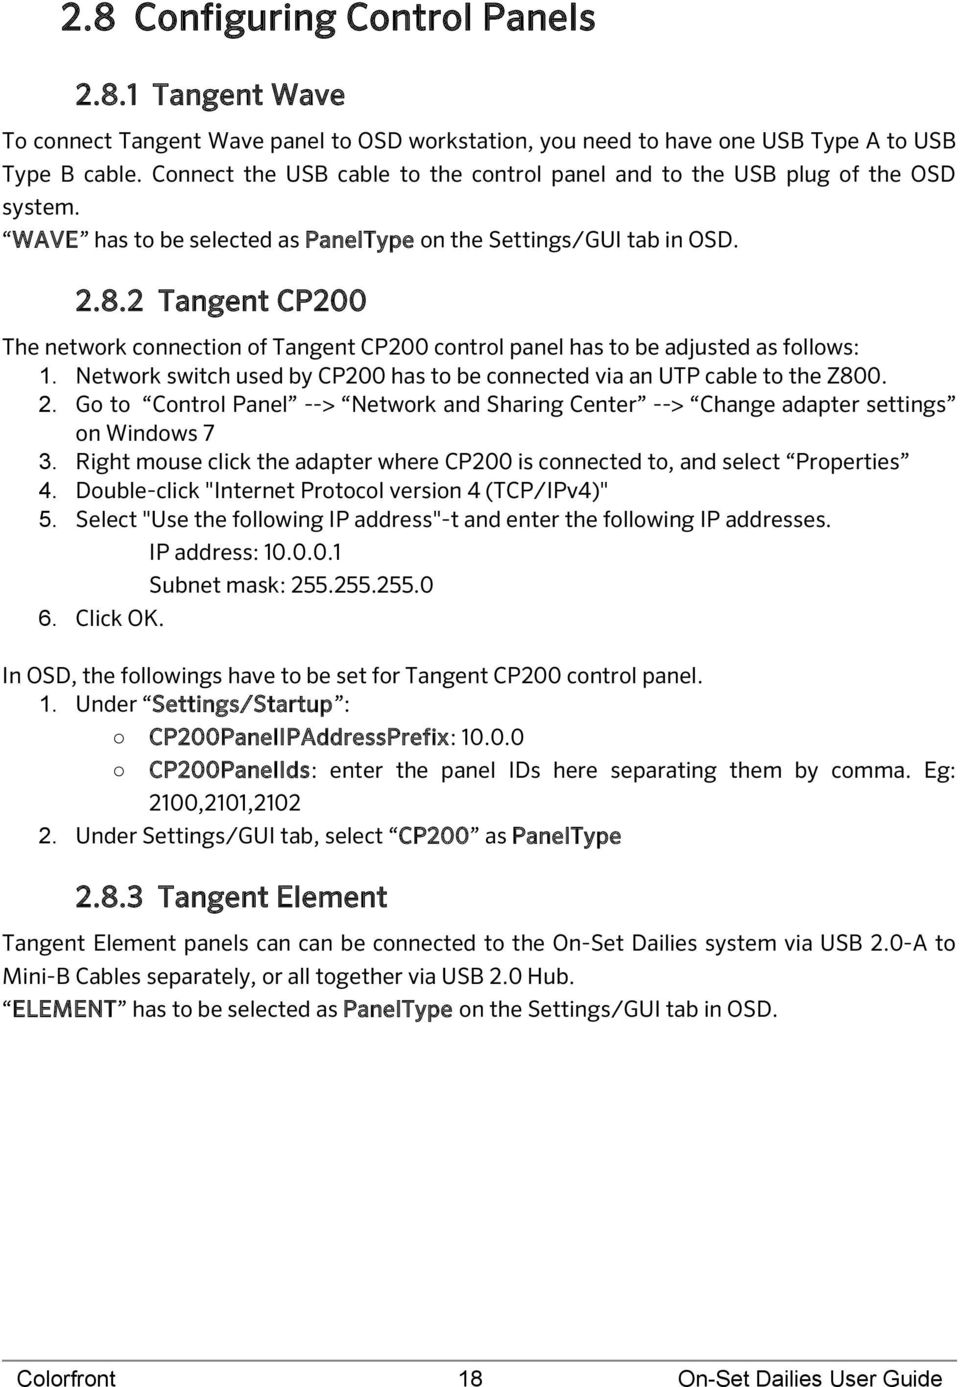 2 Tangent CP200 The network connection of Tangent CP200 control panel has to be adjusted as follows: 1. Network switch used by CP200 has to be connected via an UTP cable to the Z800. 2.